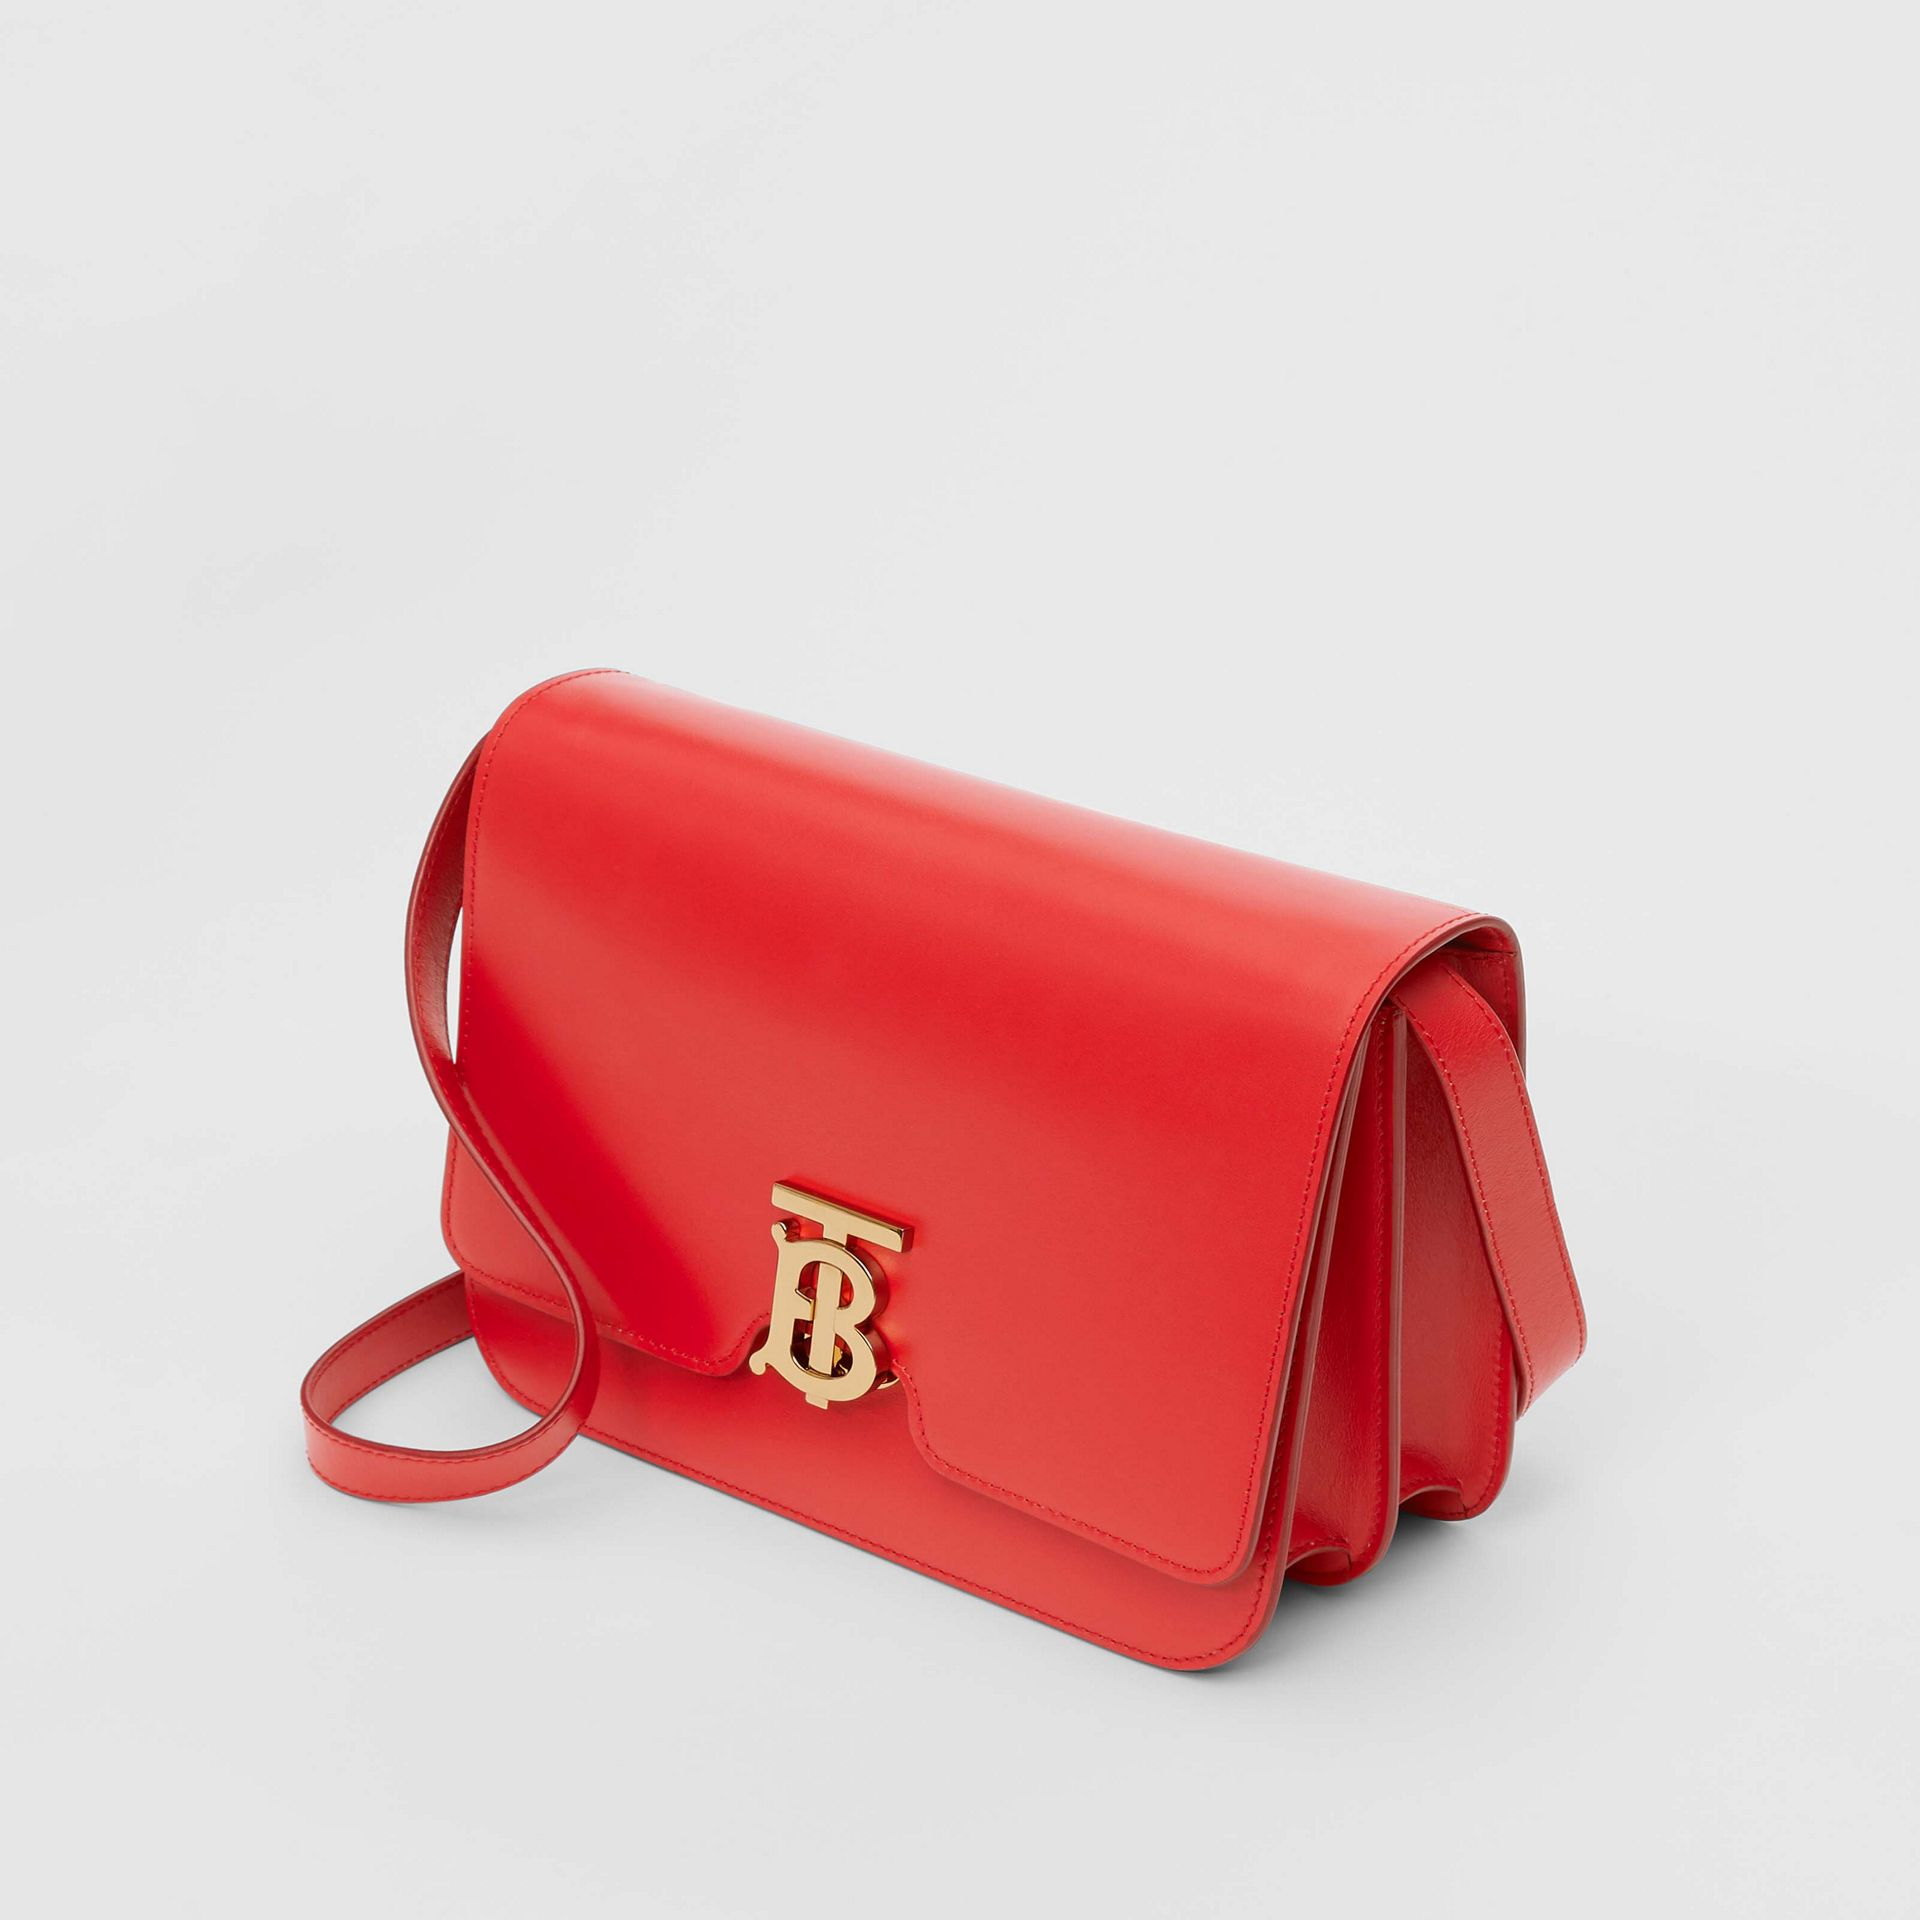 Medium Leather TB Bag in Bright Red | Burberry - gallery image 3